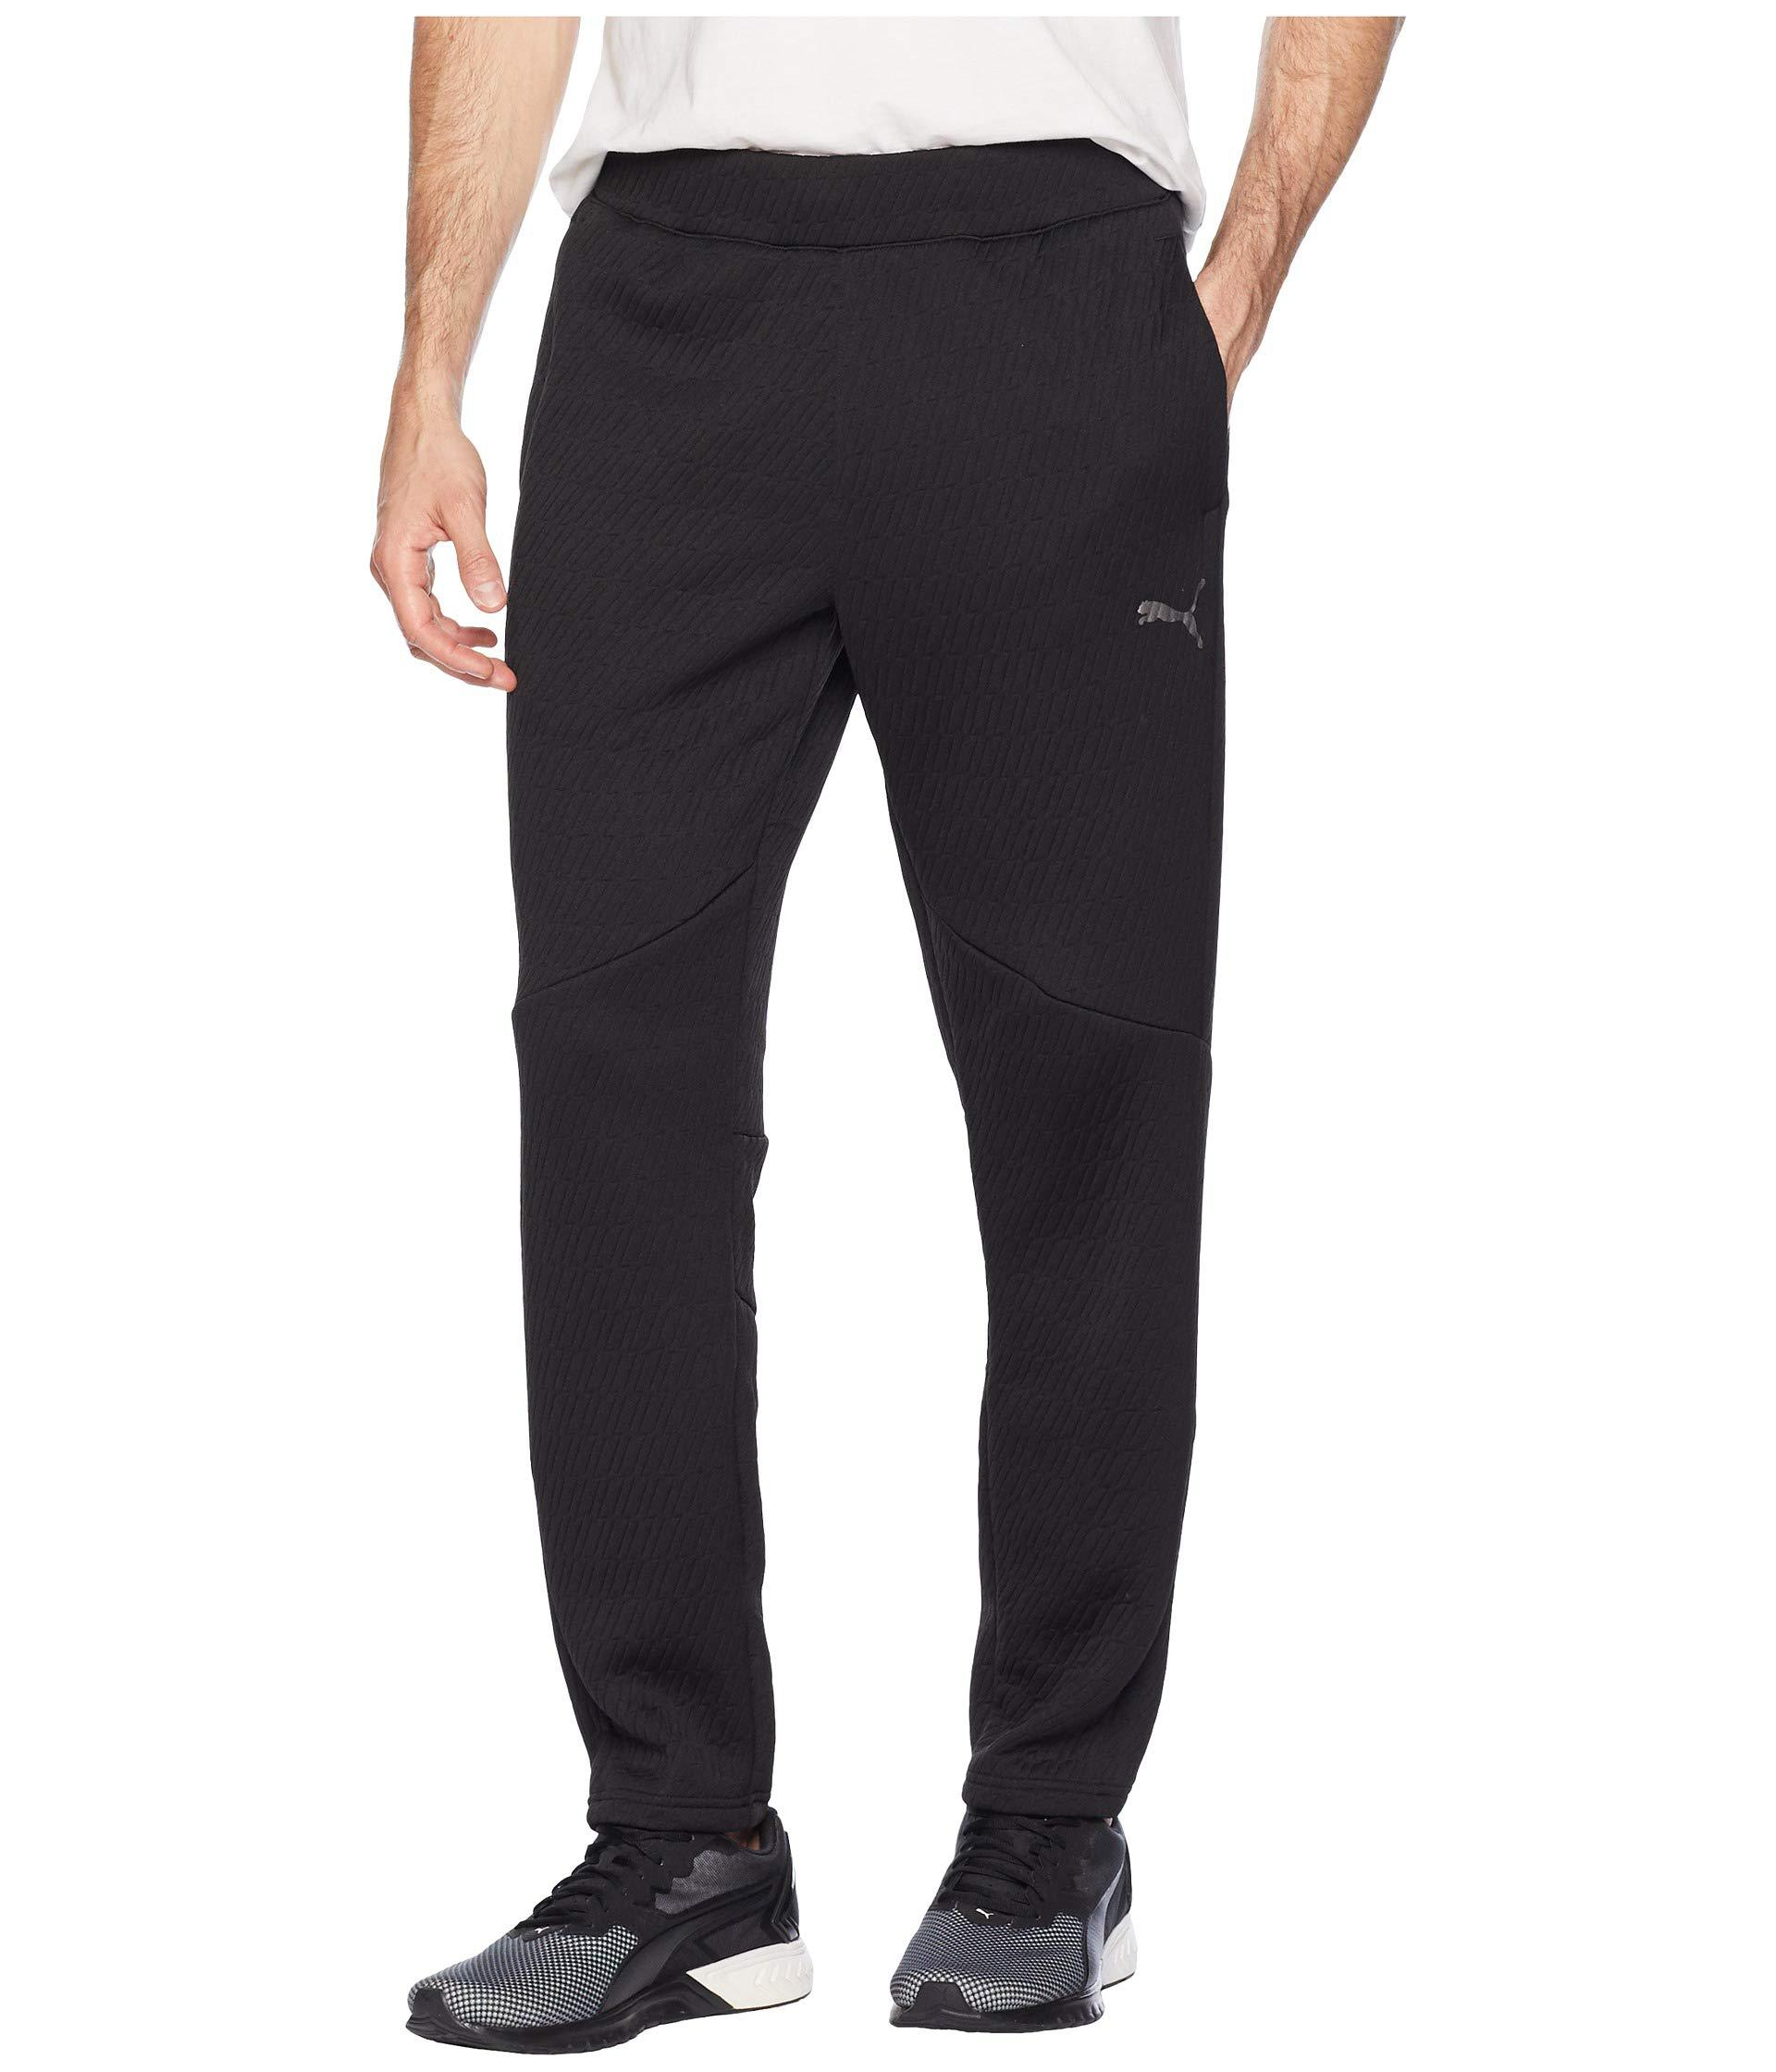 8297e921619b Lyst - PUMA Vent Knit Pants in Black for Men - Save 55%